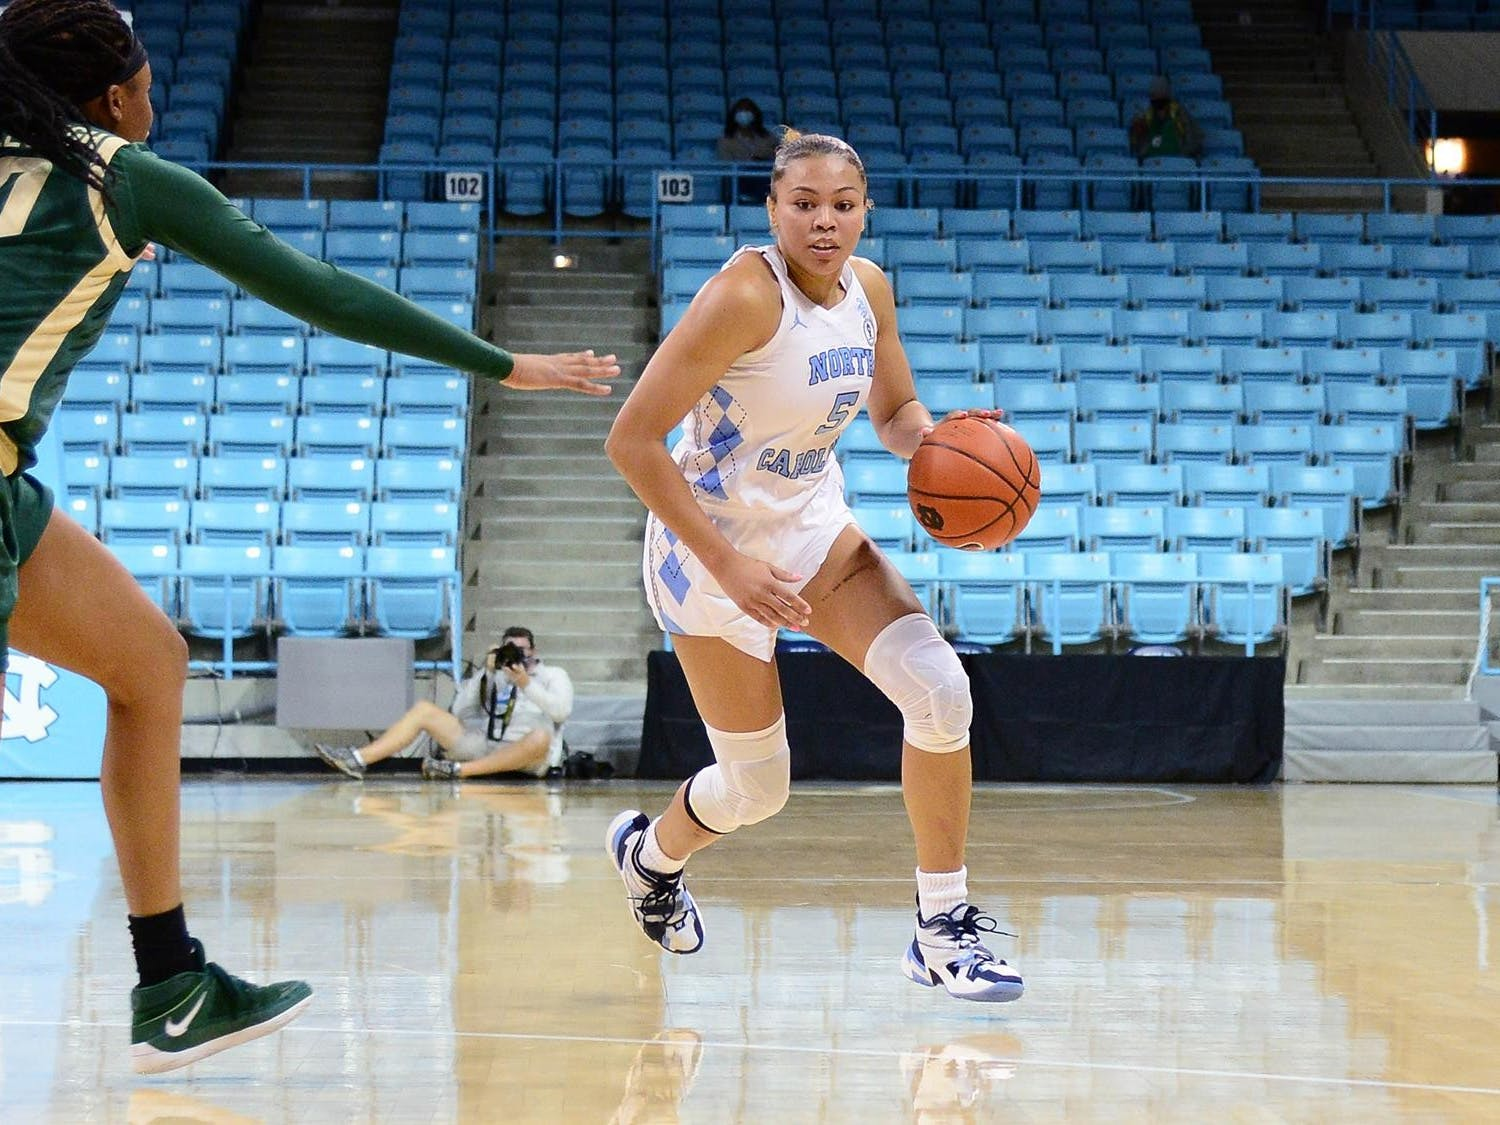 UNC graduate guard Stephanie Watts (5) avoids UNC Charlotte players during a game in Carmichael Arena on Sunday, Dec. 6, 2020. UNC beat UNCC 81-75. Photo courtesy of UNC Athletic Communications.